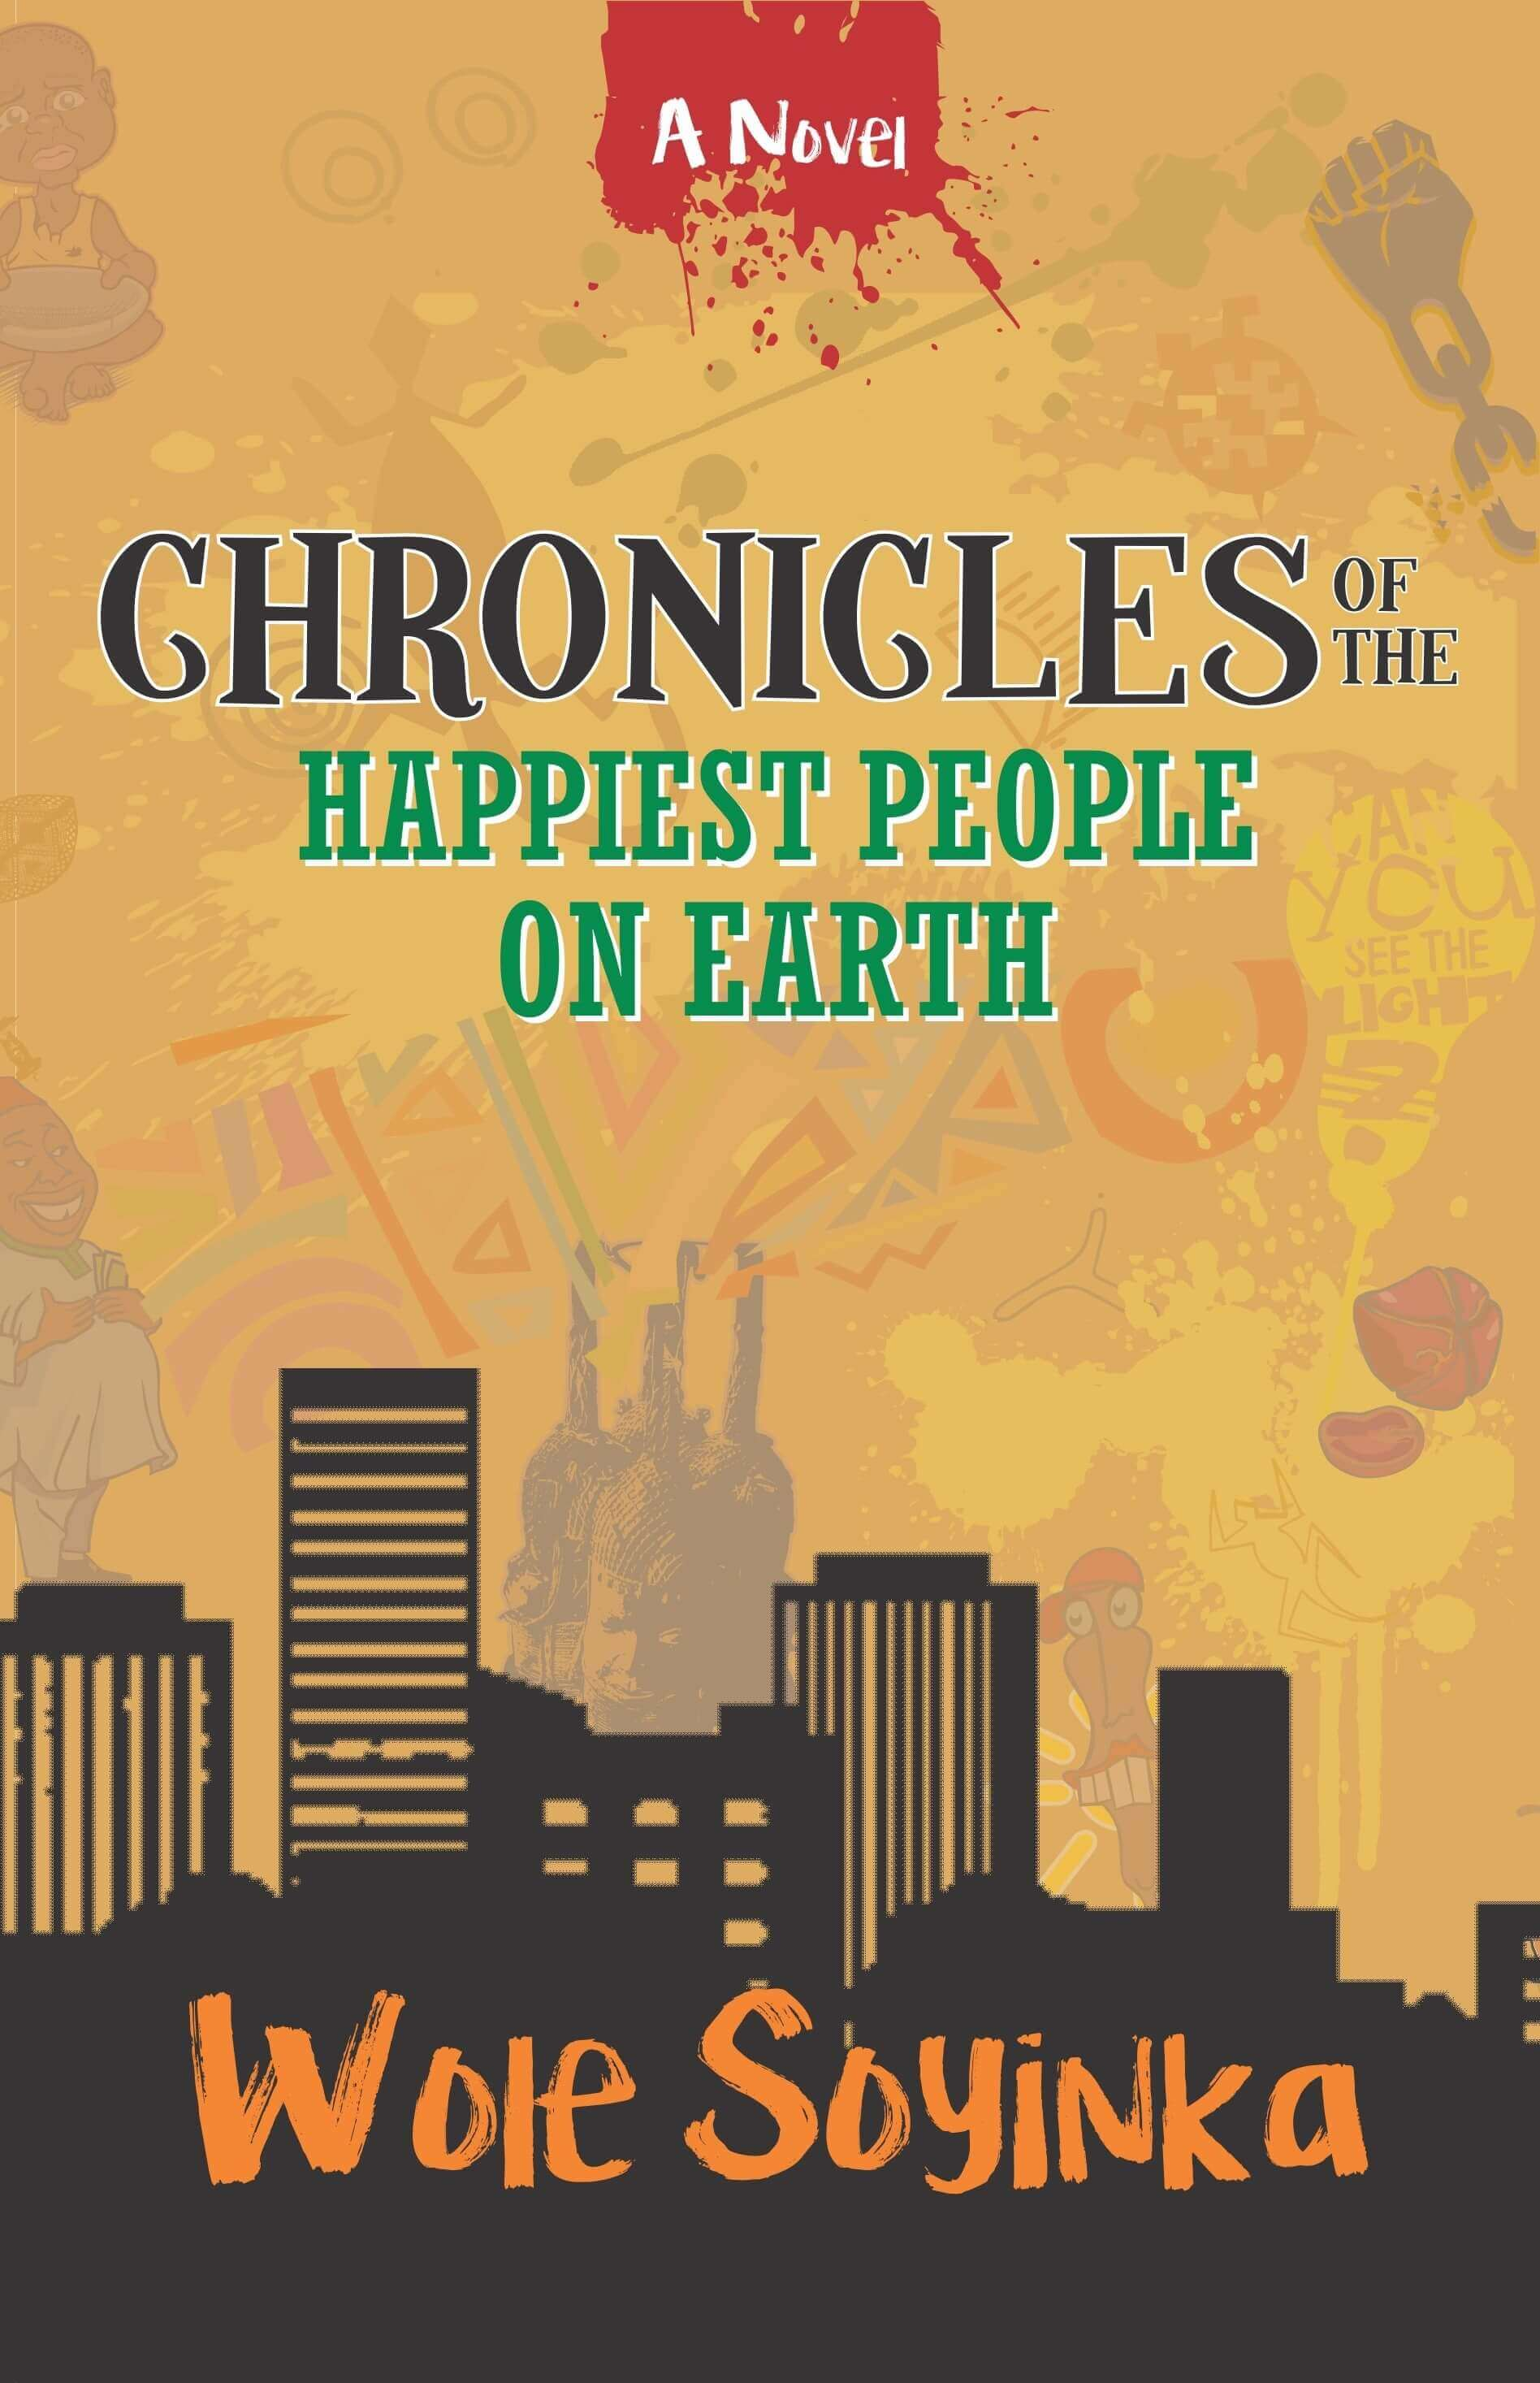 Pre-order Wole Soyinka's Latest Novel: 'Chronicles of the Happiest People on Earth'